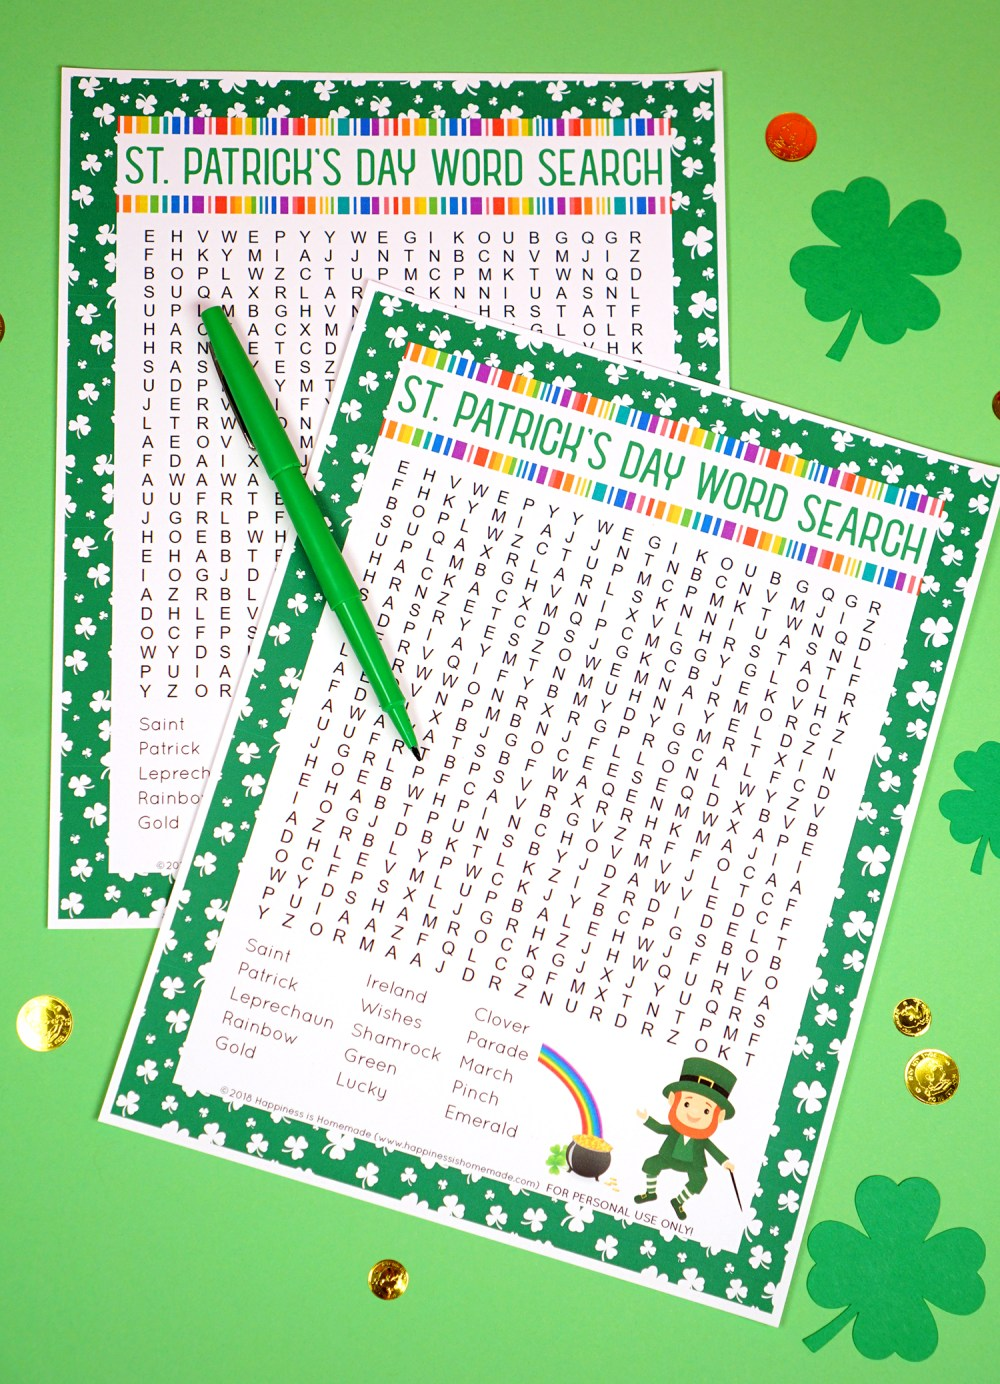 medium resolution of St. Patrick's Day Word Search Printable - Happiness is Homemade